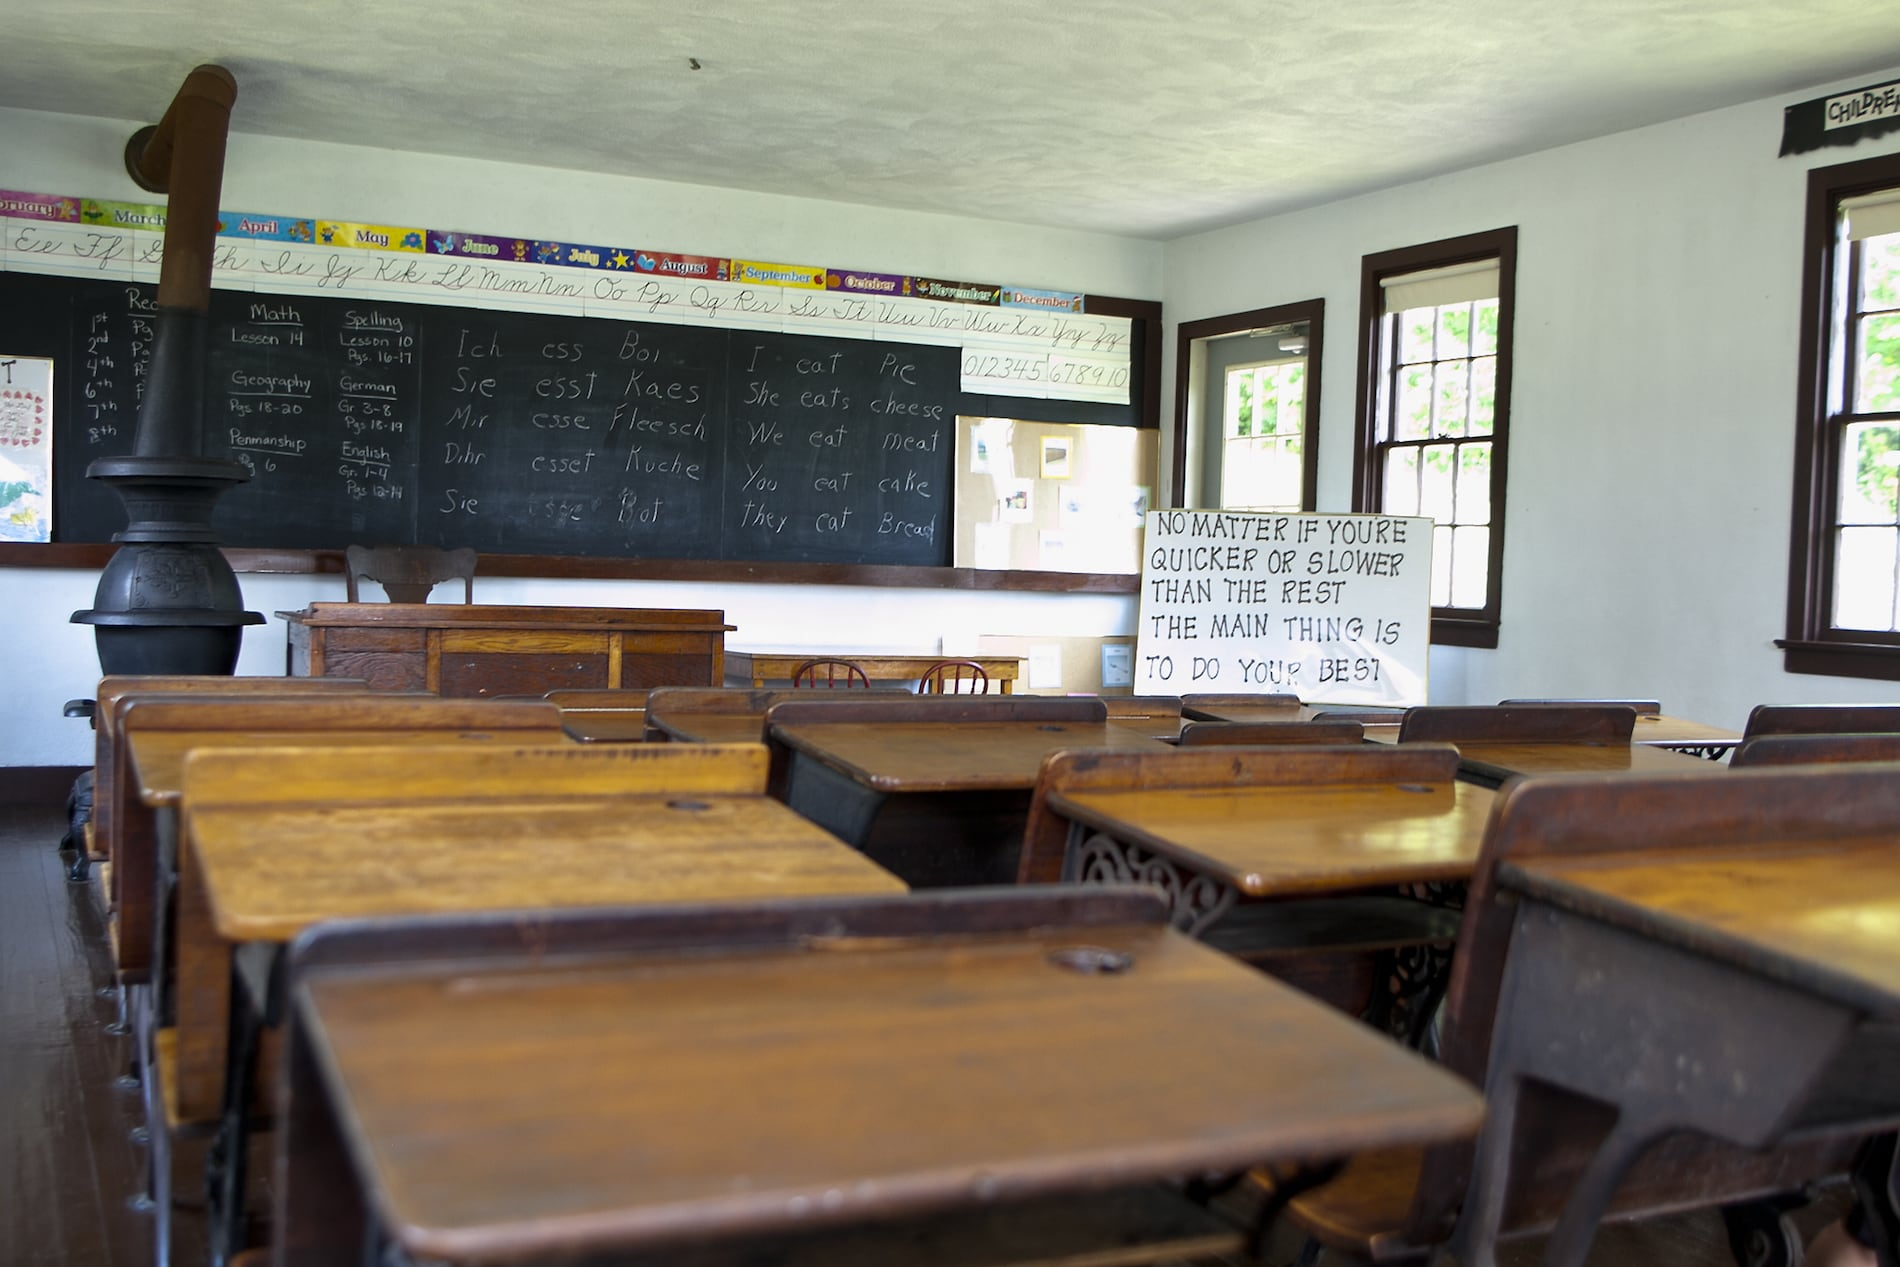 Amish Schoolhouse interior